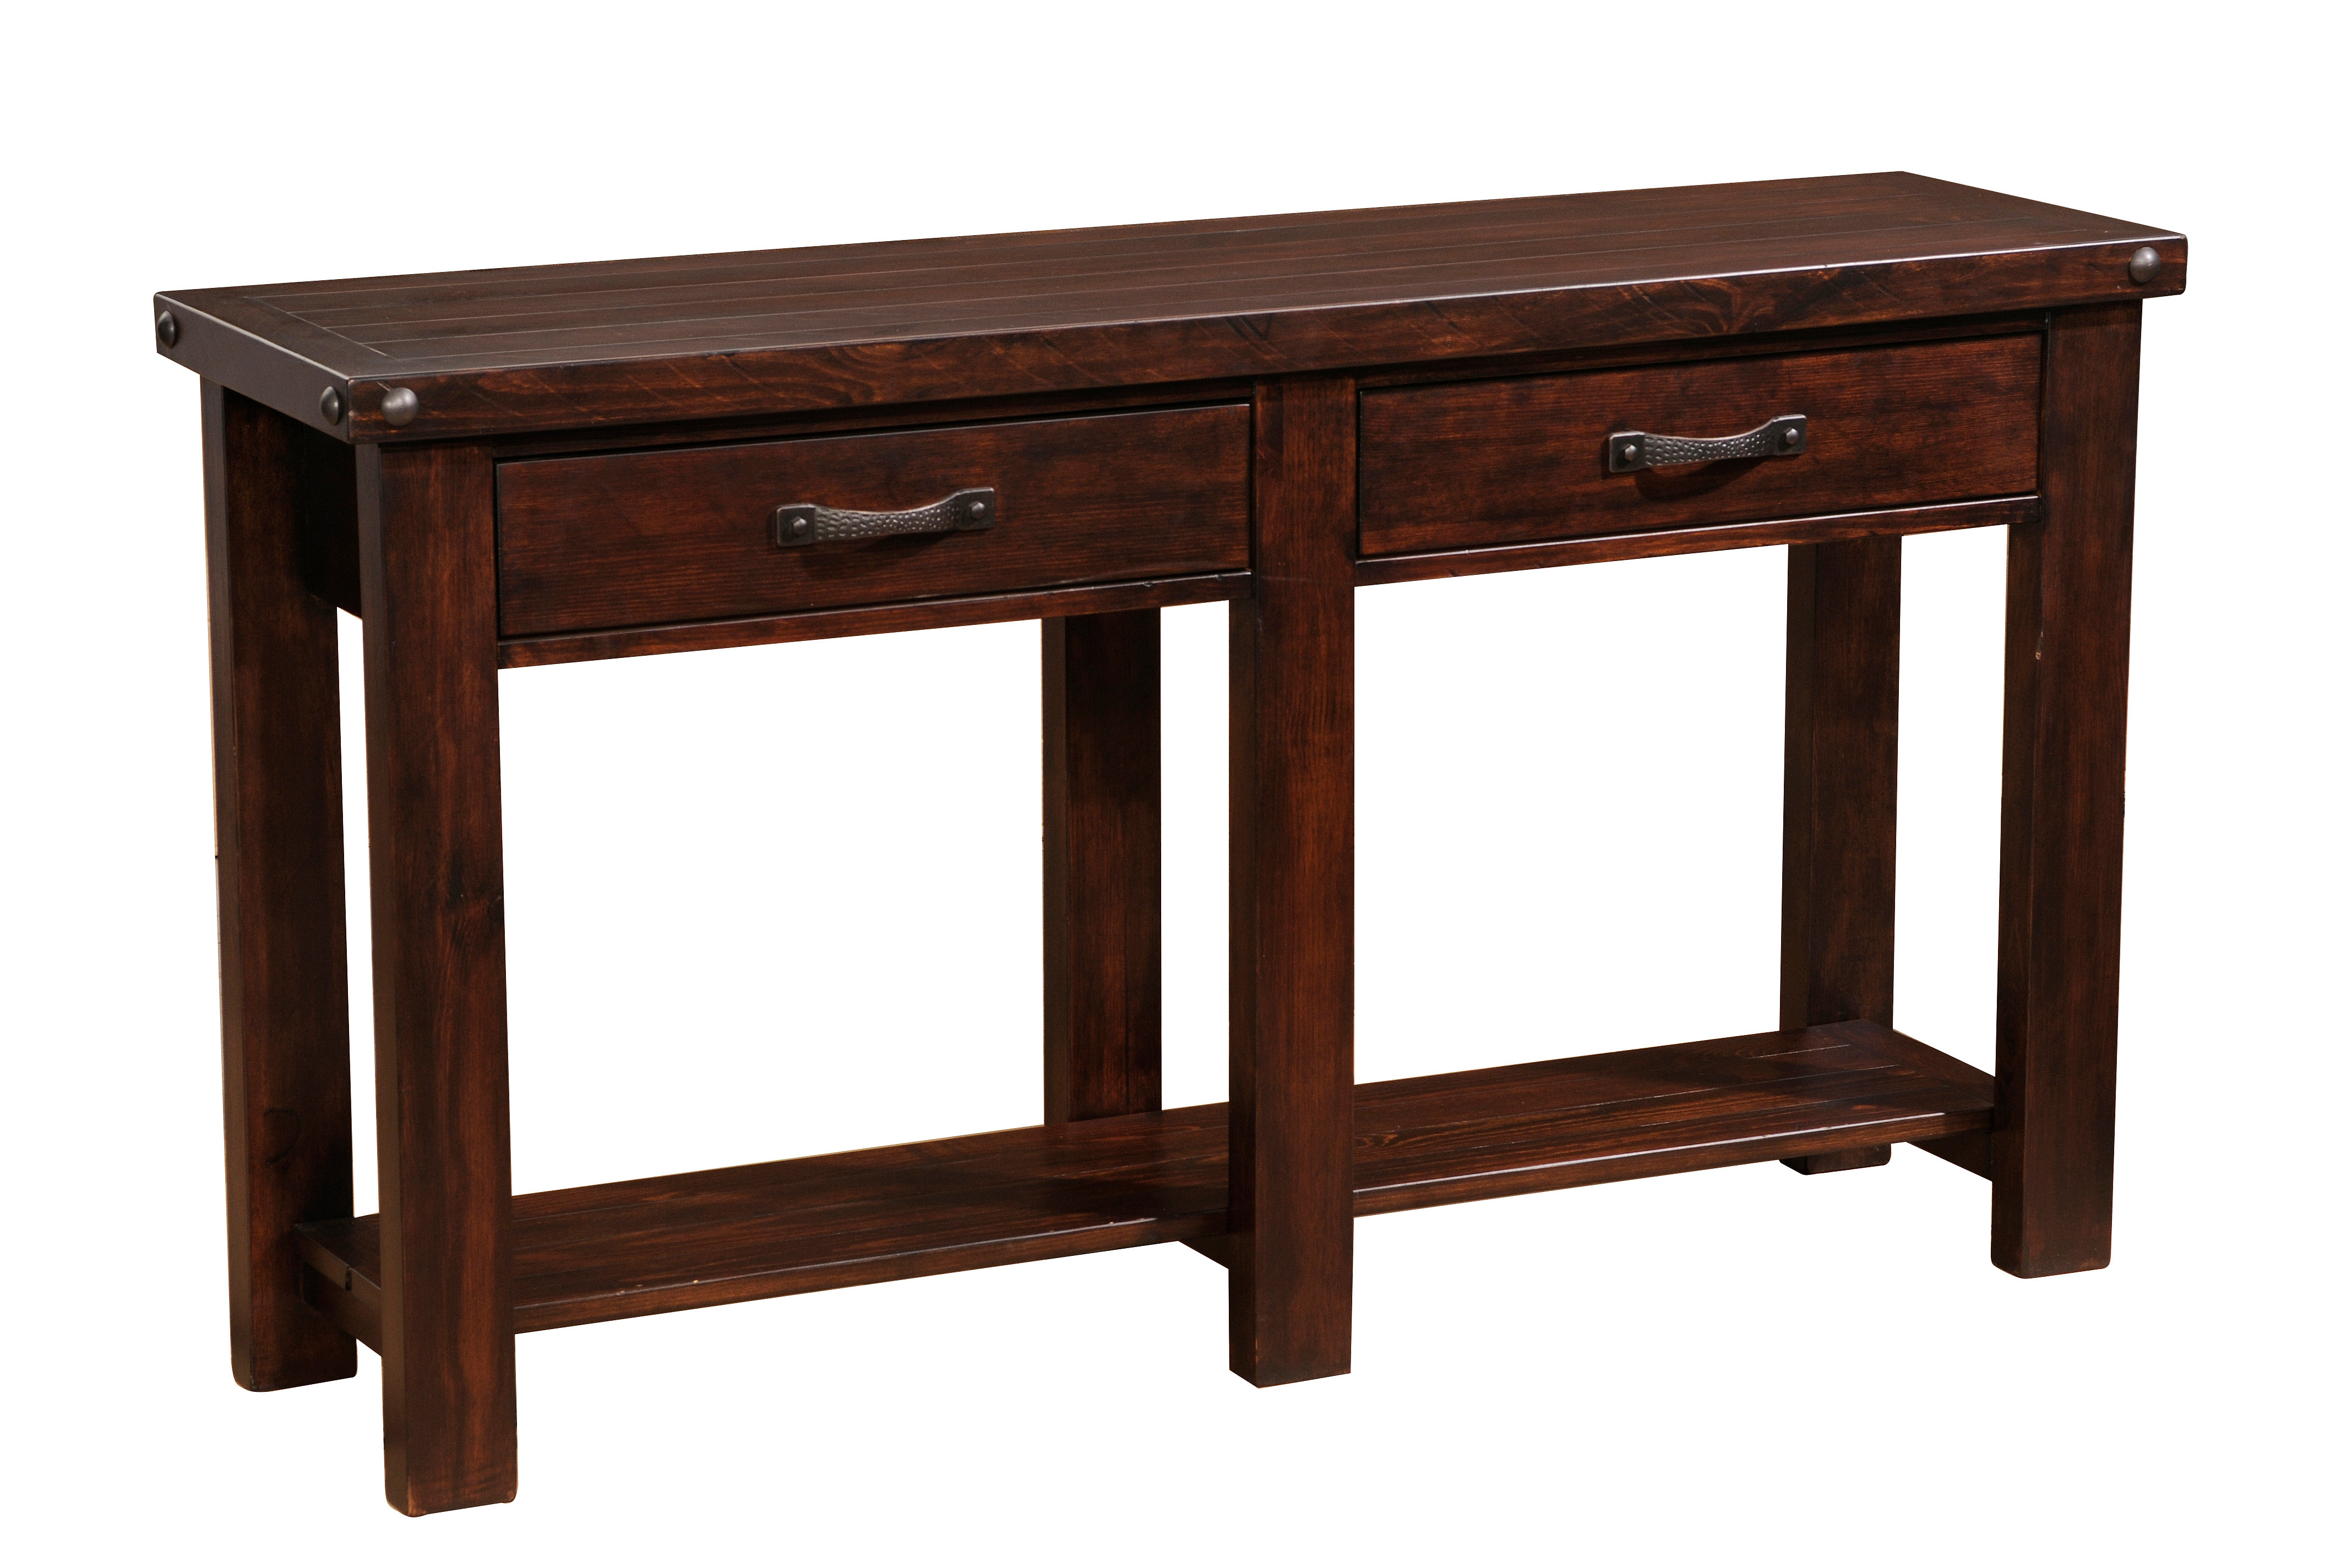 Kelly barn home cabin furnishings united states 54l two 54l two drawer console table geotapseo Image collections